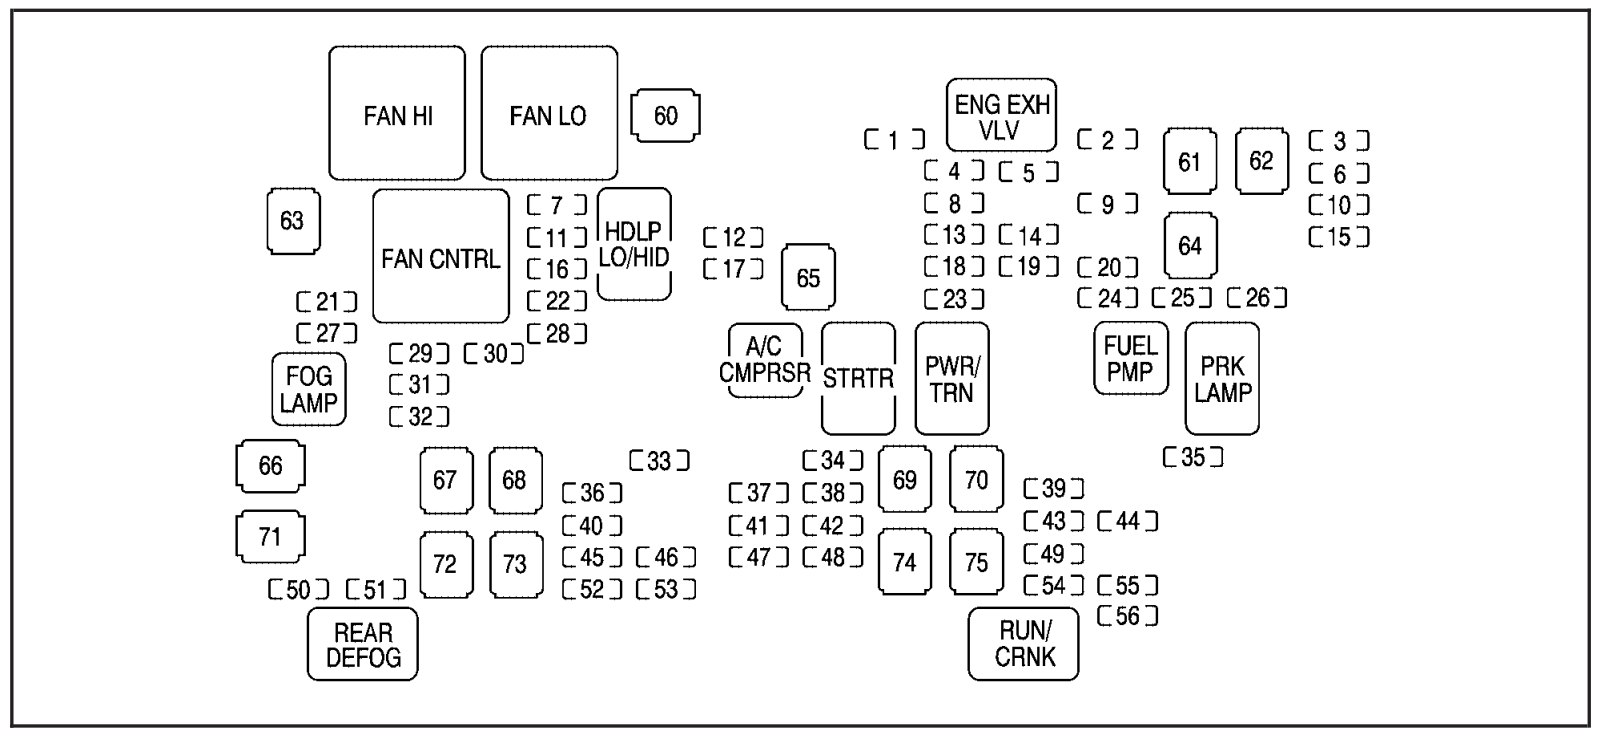 Chevrolet Tahoe  2007  - Fuse Box Diagram